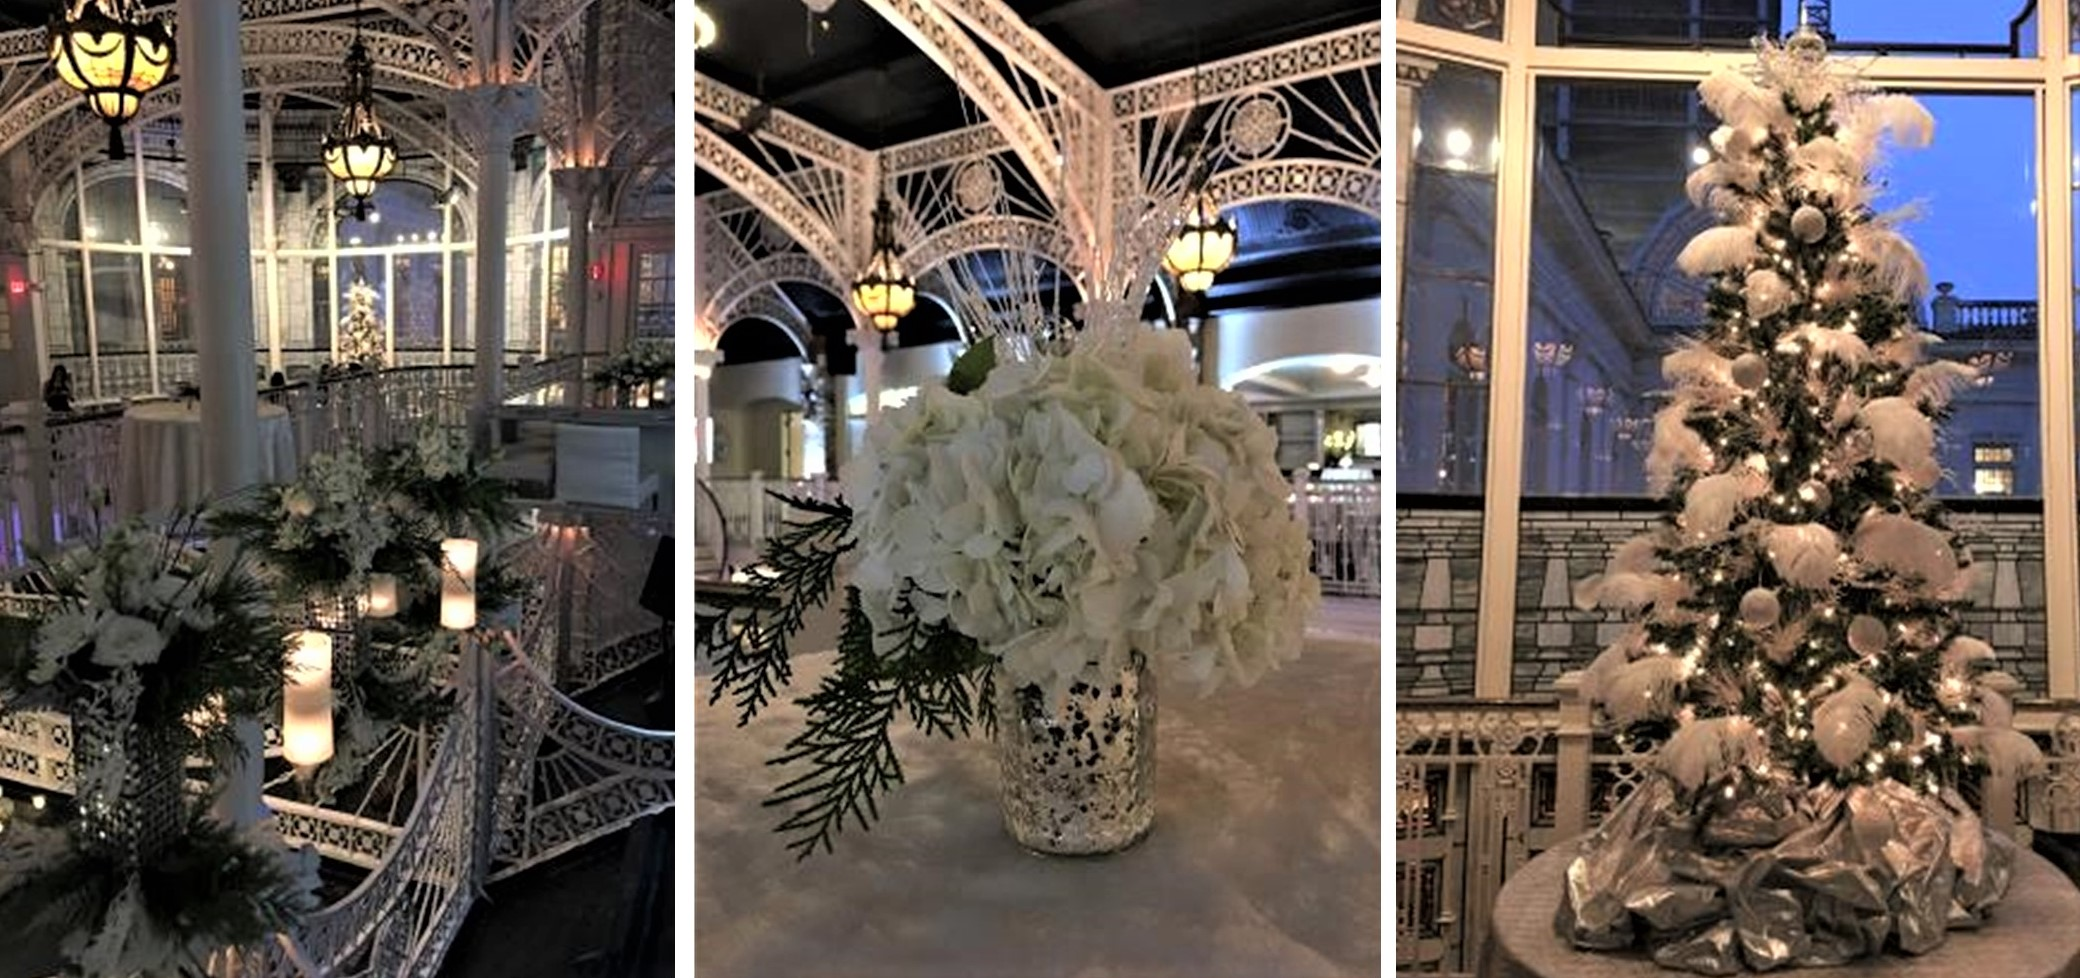 Icy White floral and silver accents - Winter Wonderland - CDC Floral